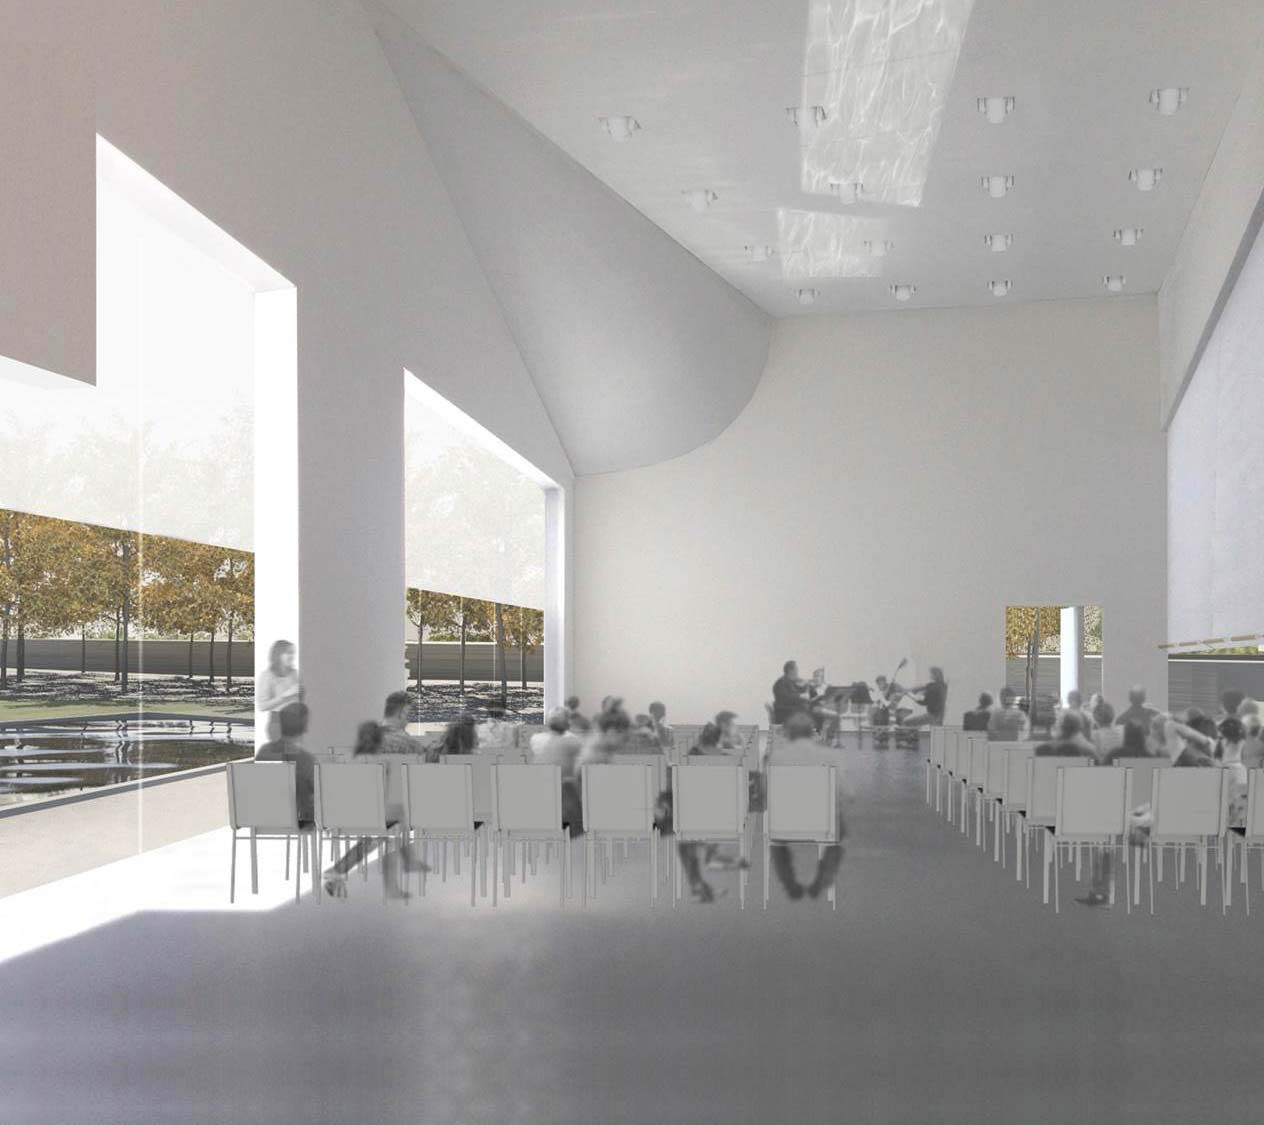 A view inside the planned River Pavilion, which the Kennedy Center can be used as a cafe setting or a performance space. (Courtesy Steven Holl Architects via the Kennedy Center)